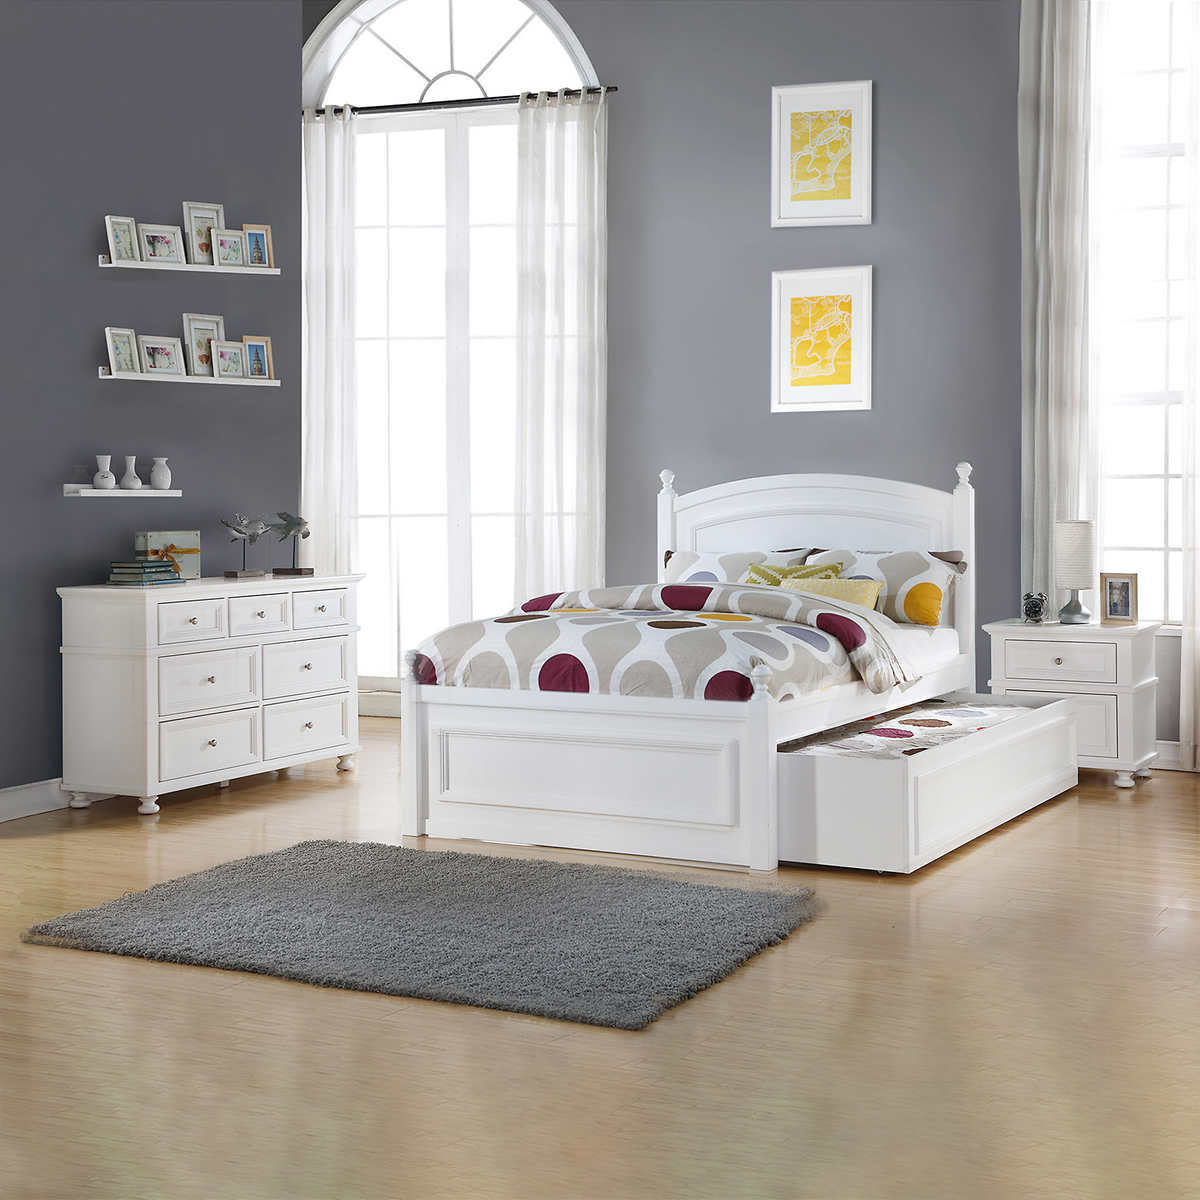 Ava 9-piece Set with Double Bed